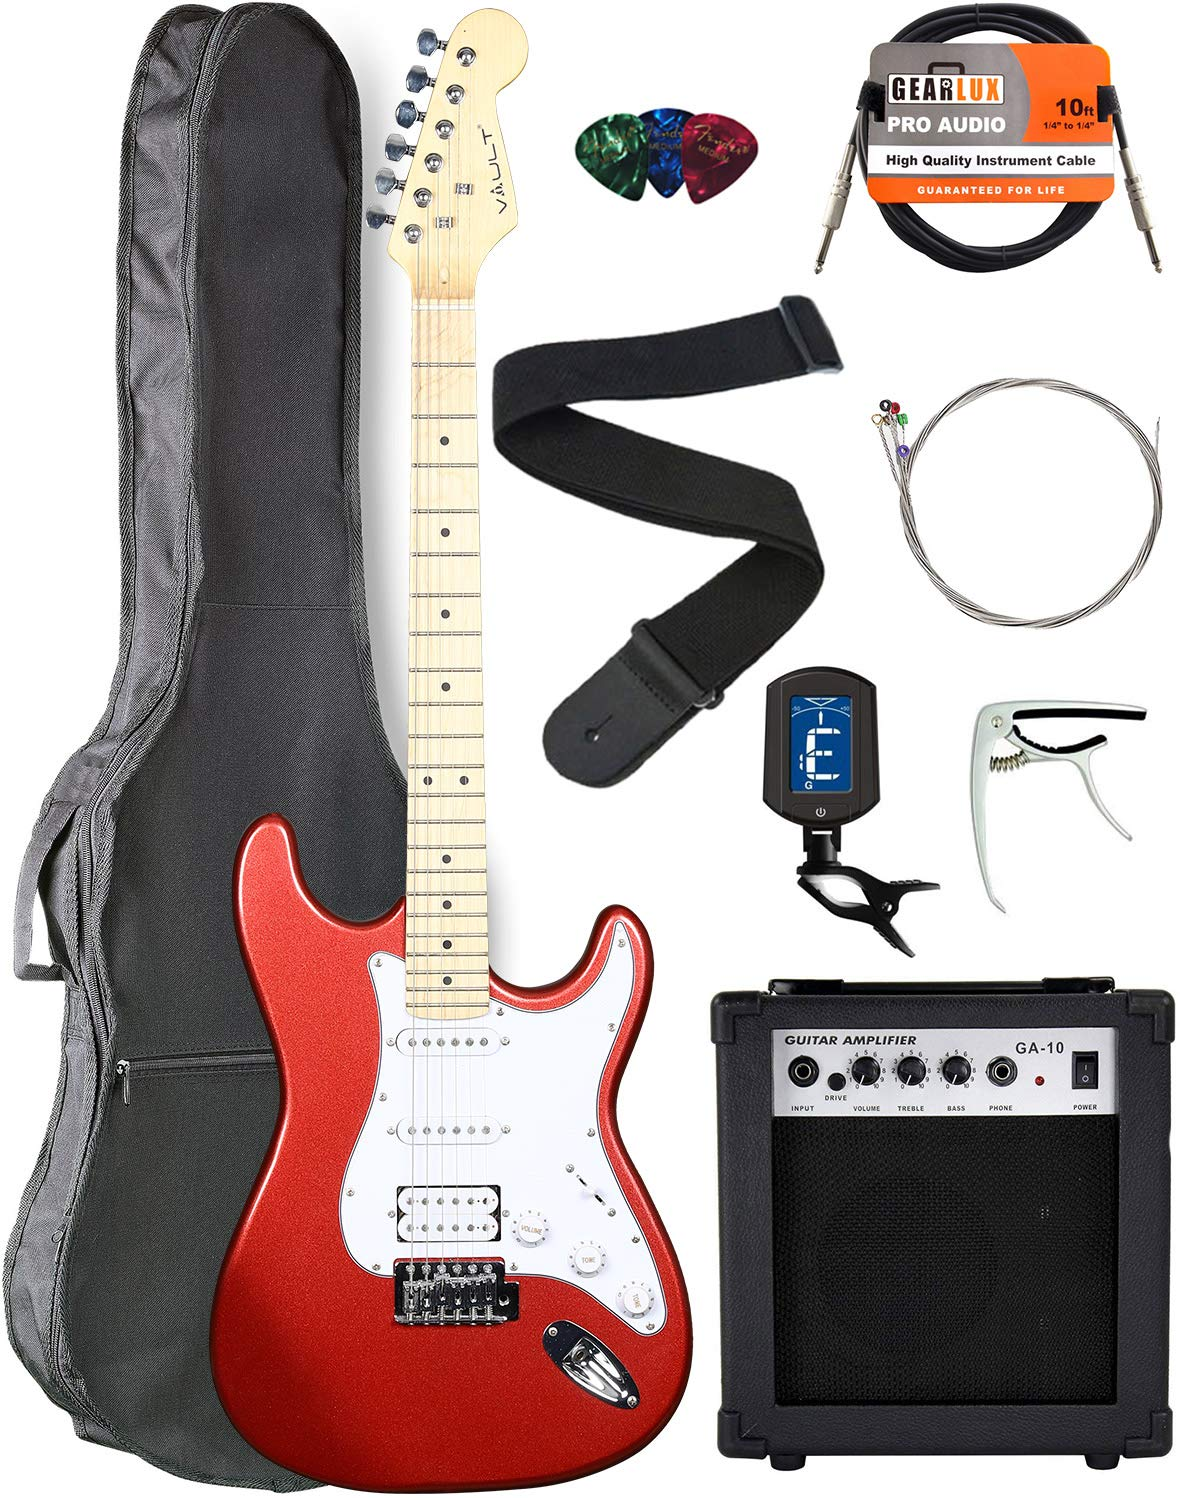 Contents of the Vault ST1 Metallic Red Electric Guitar Bundle